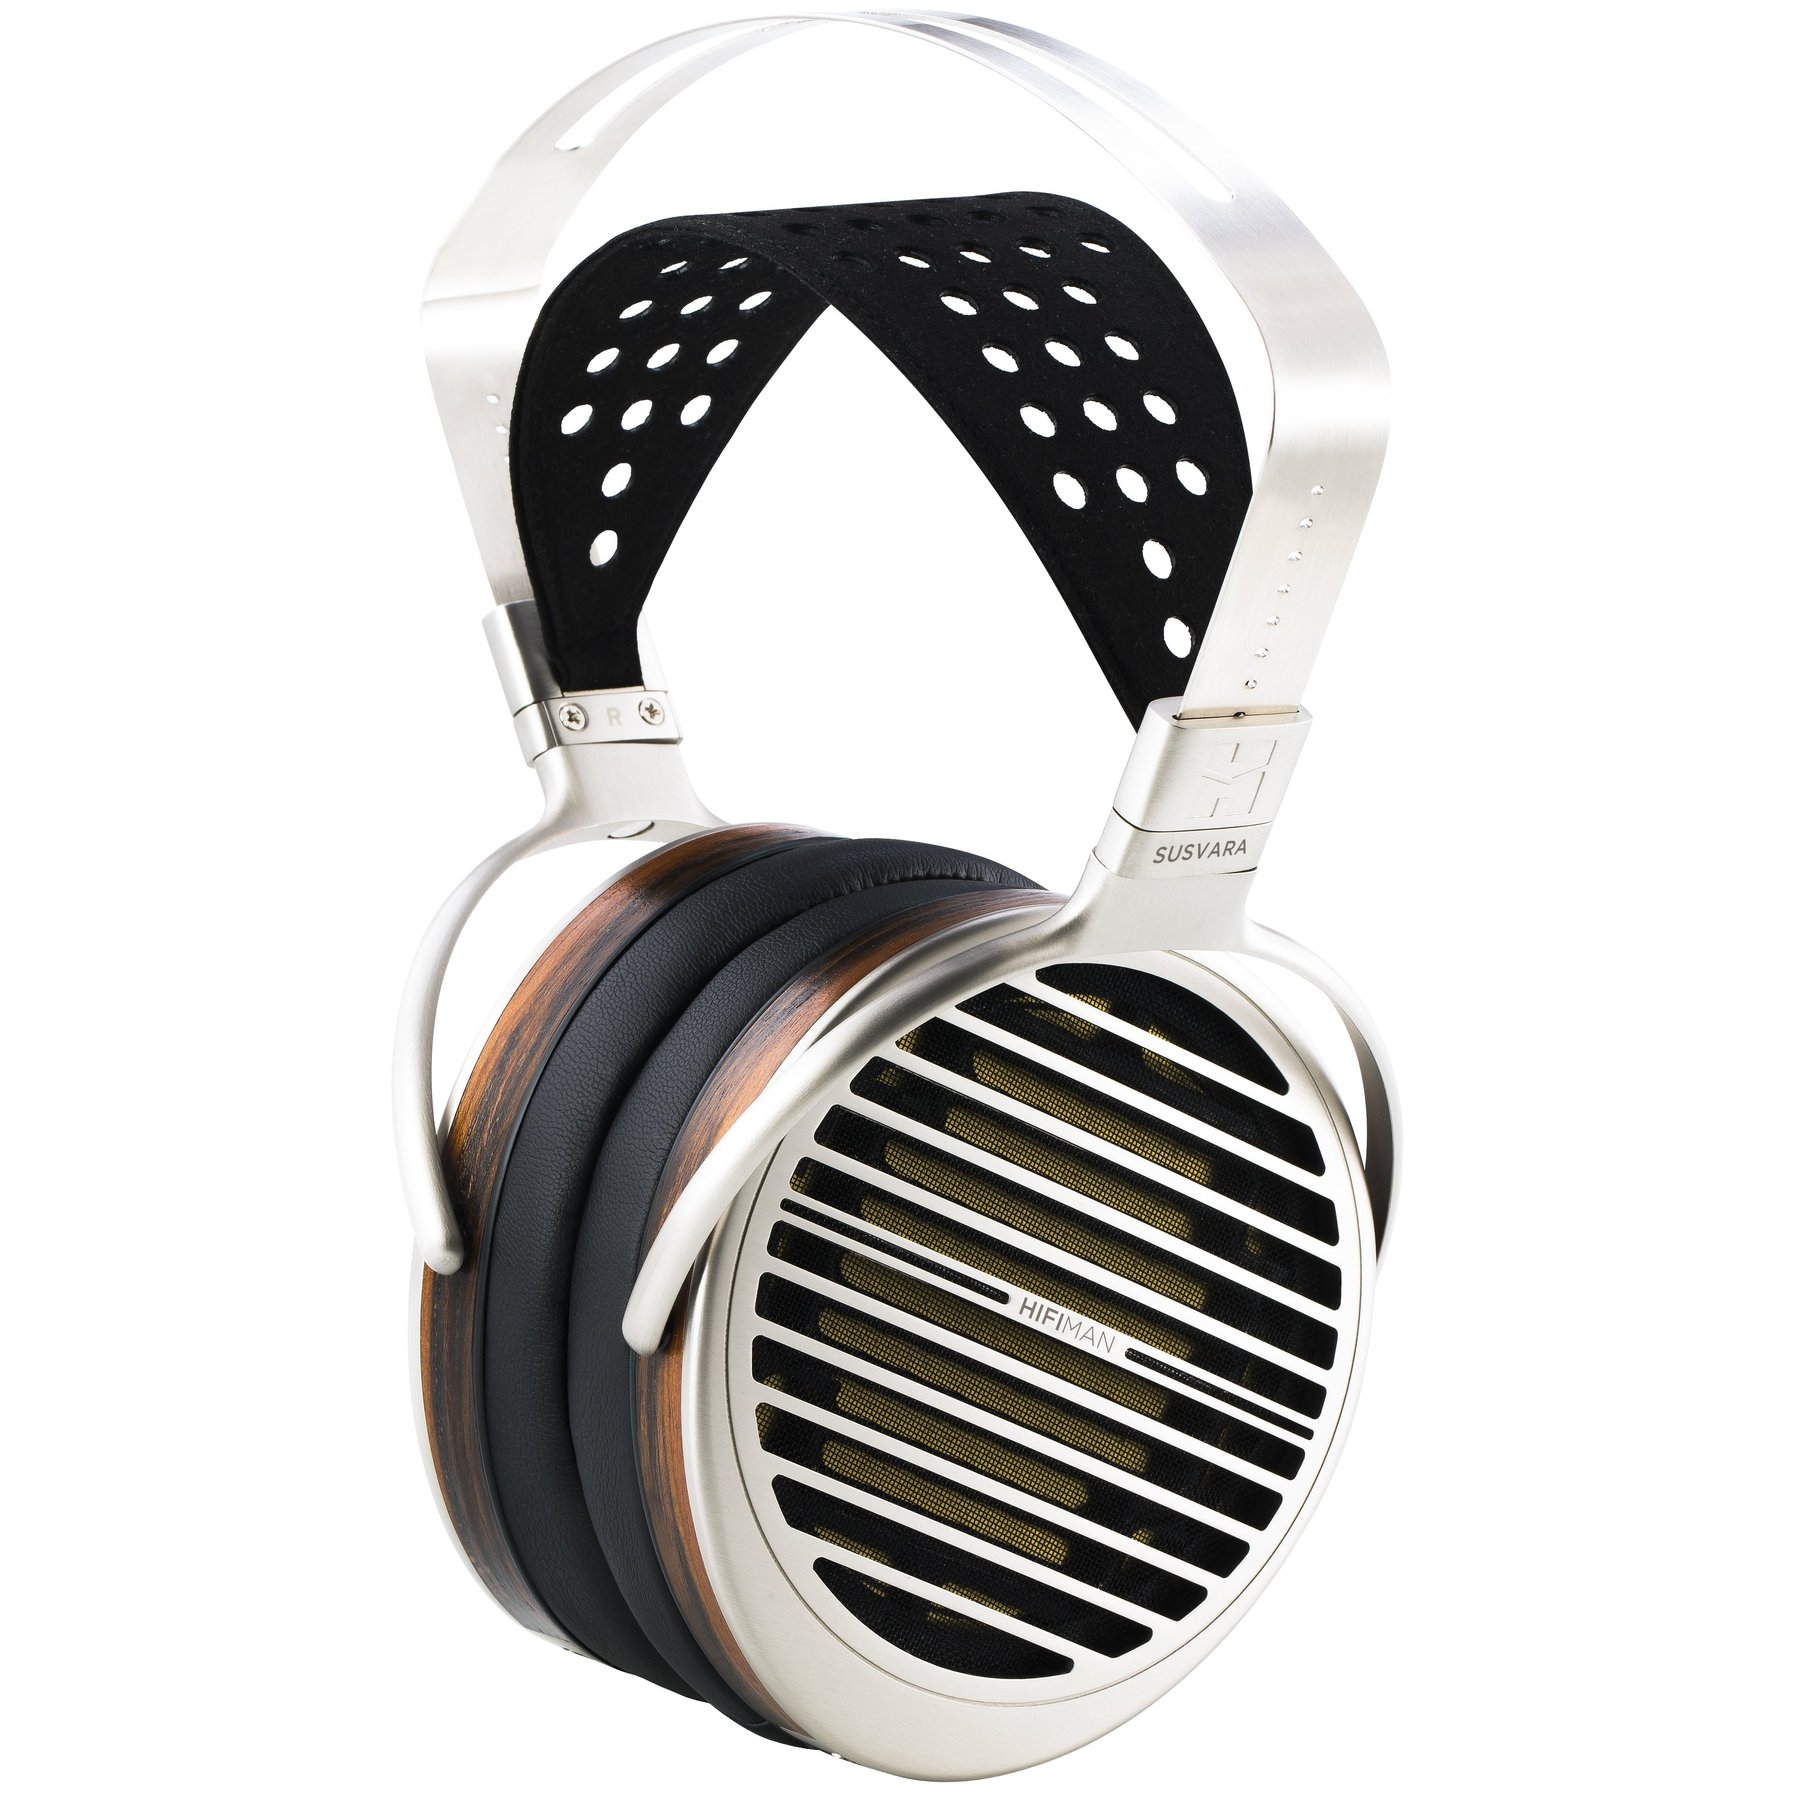 hifiman-susvara-endgame-planar-magnetic-open-back-headphones-bloom-audio_1800x1800